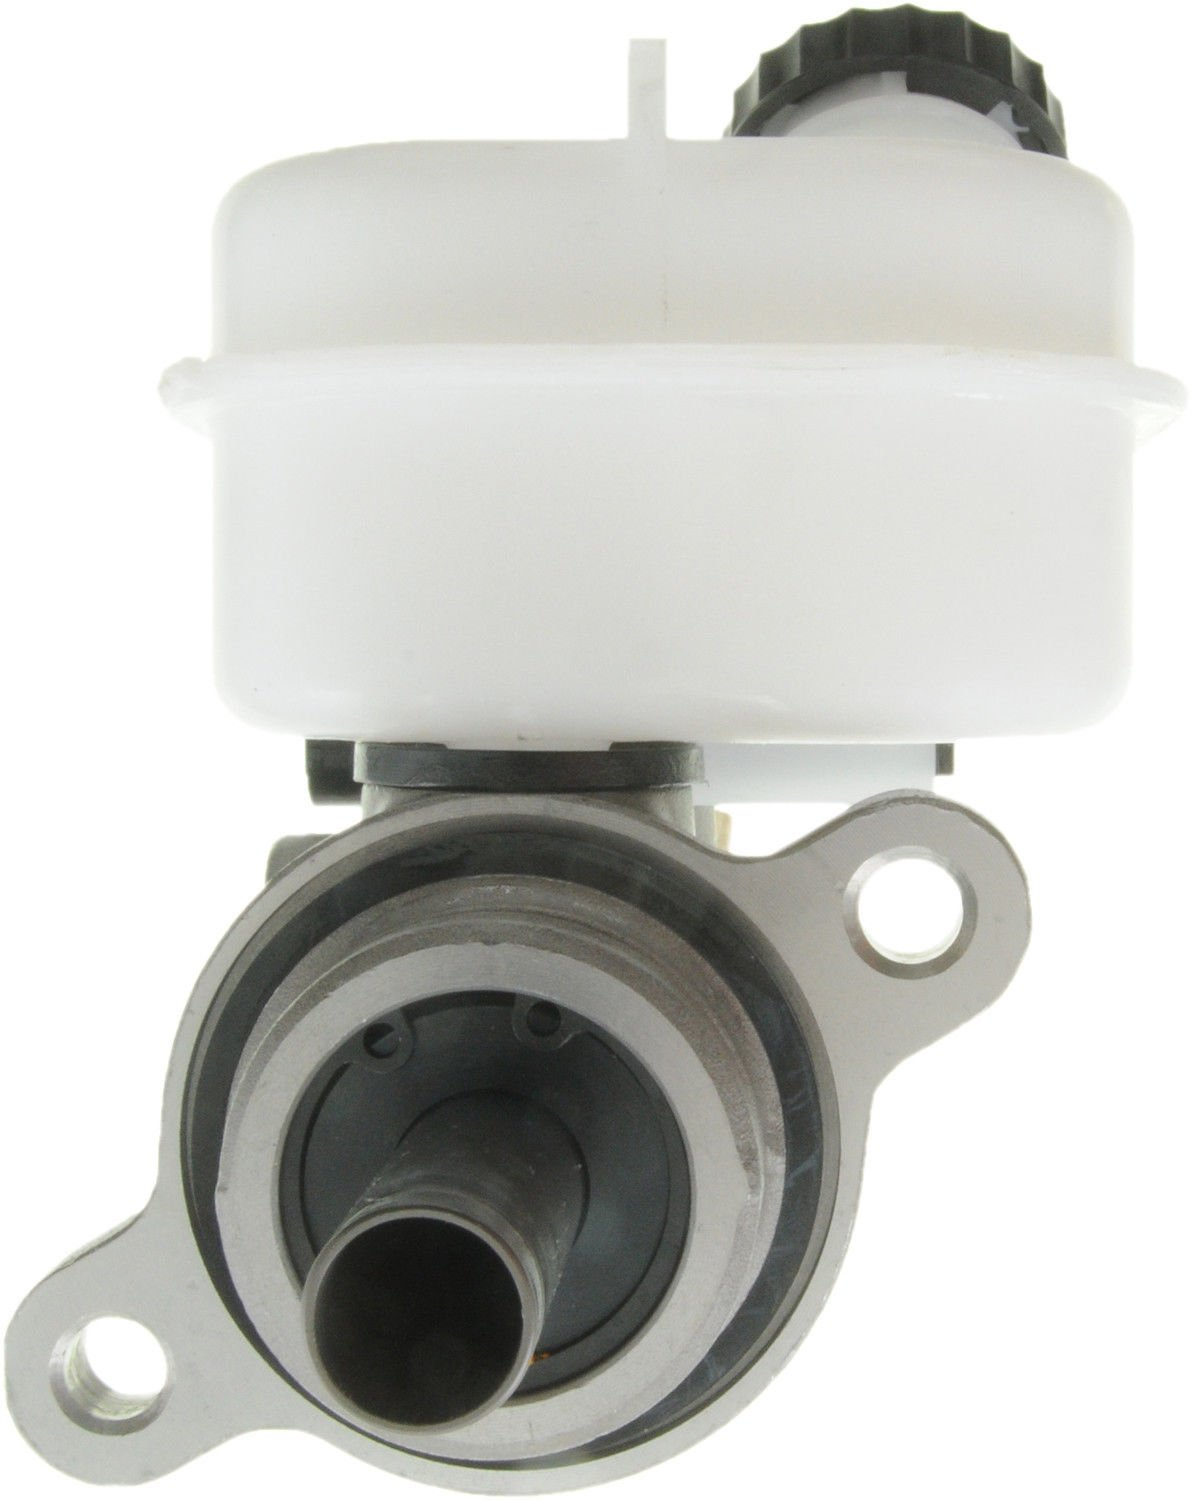 2001-2002 Plym Brake master cylinder for DODGE 2001-2002 Chrysler Town /& Country with 4 wheel disc /& with traction control 2001-2002 Dodge CARAVAN GRAND CARAVAN 4 wheel disc /& with traction control